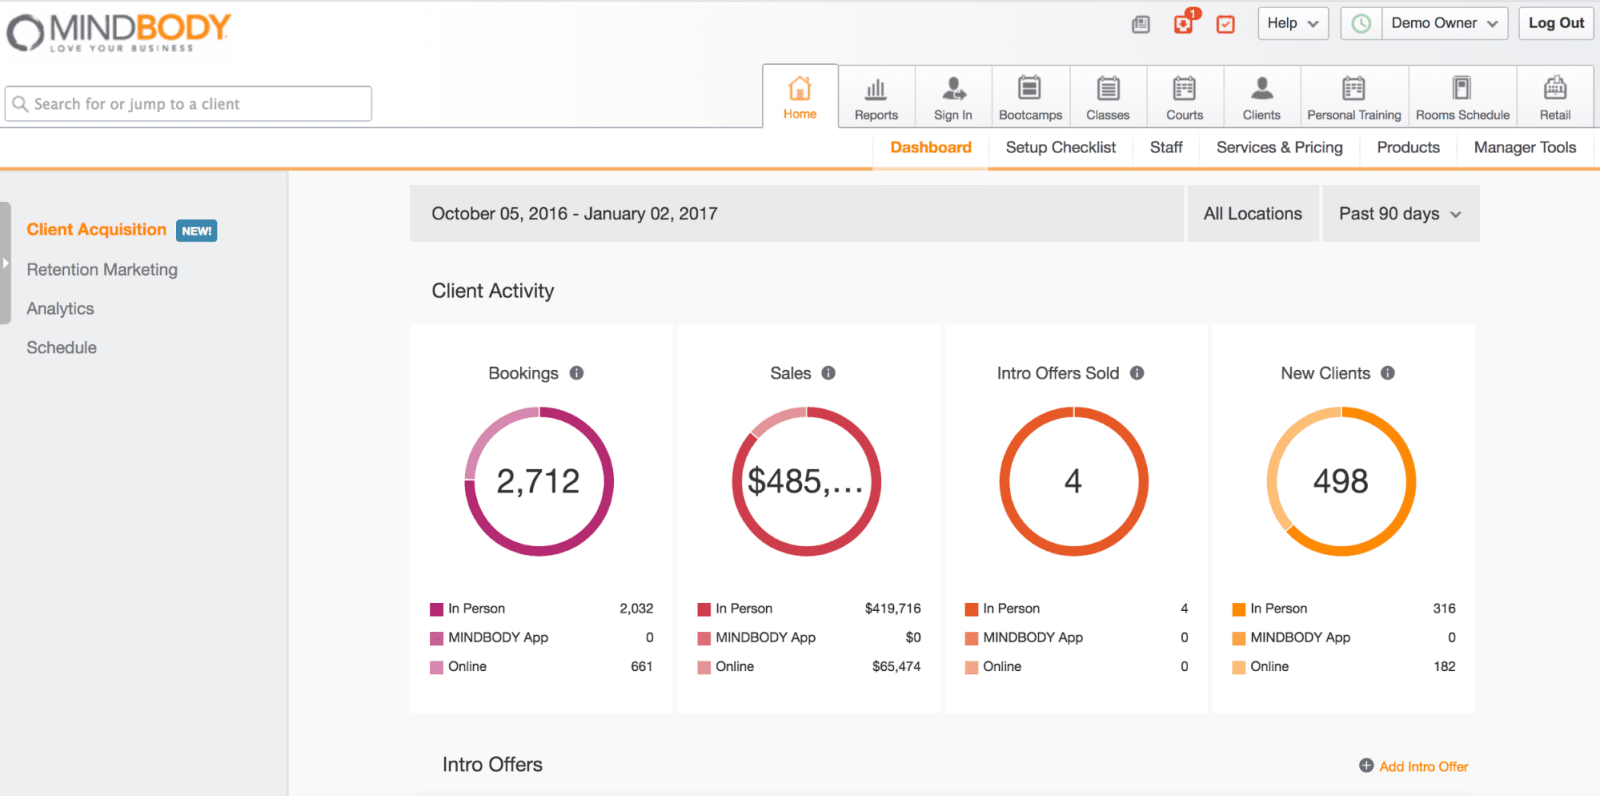 MINDBODY Client Acquisition Dashboard